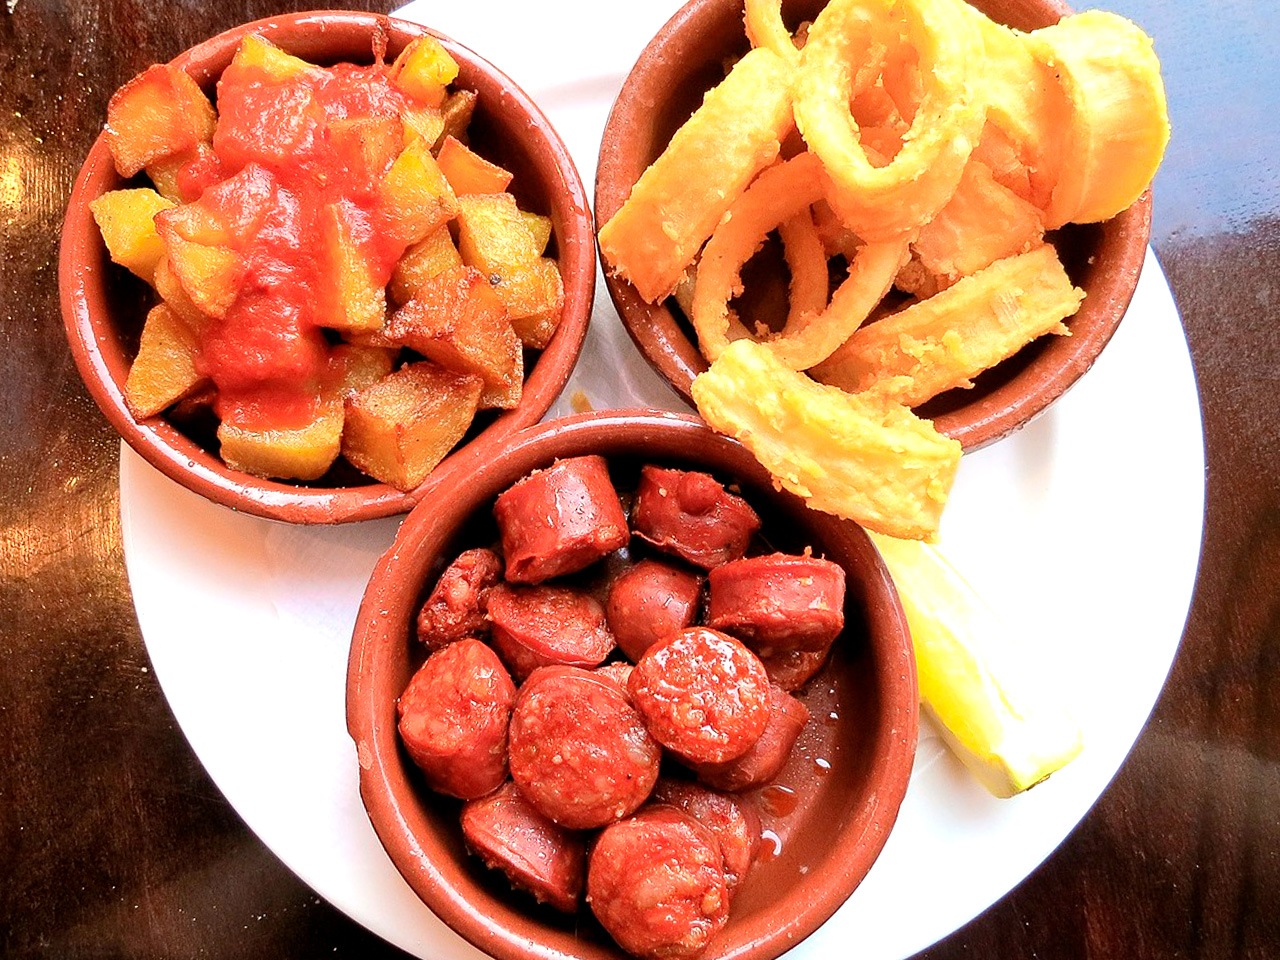 Tapas in bowls